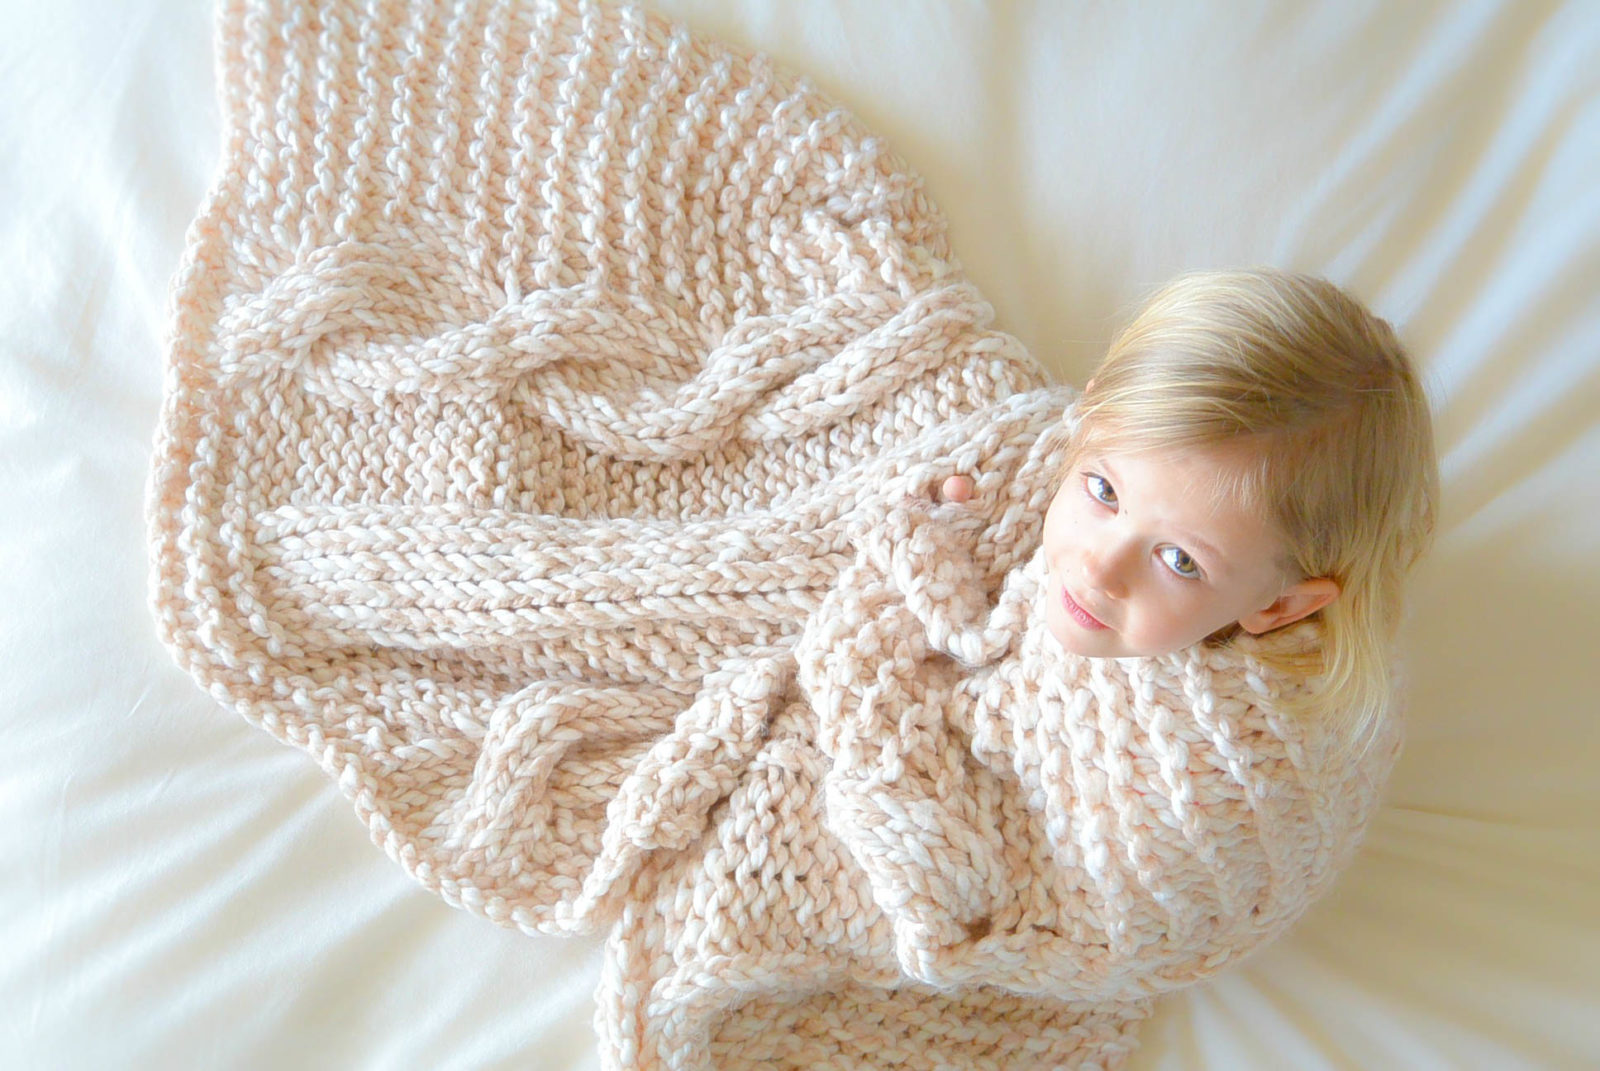 Easy Knit Blanket How To : Endless Cables Chunky Knit Throw Pattern   Mama In A Stitch